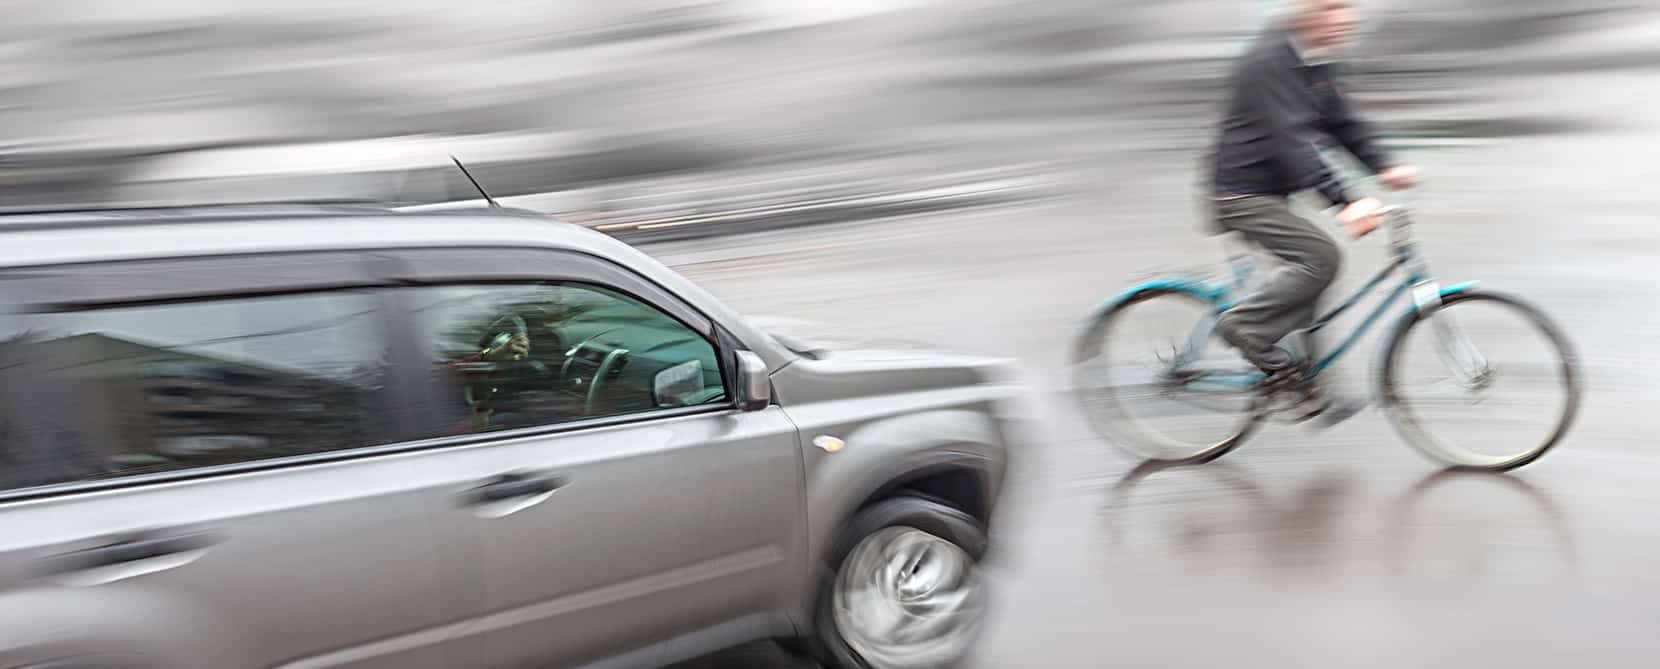 ' Man on bicycle about to get into a bicycle accident with an oncoming car '